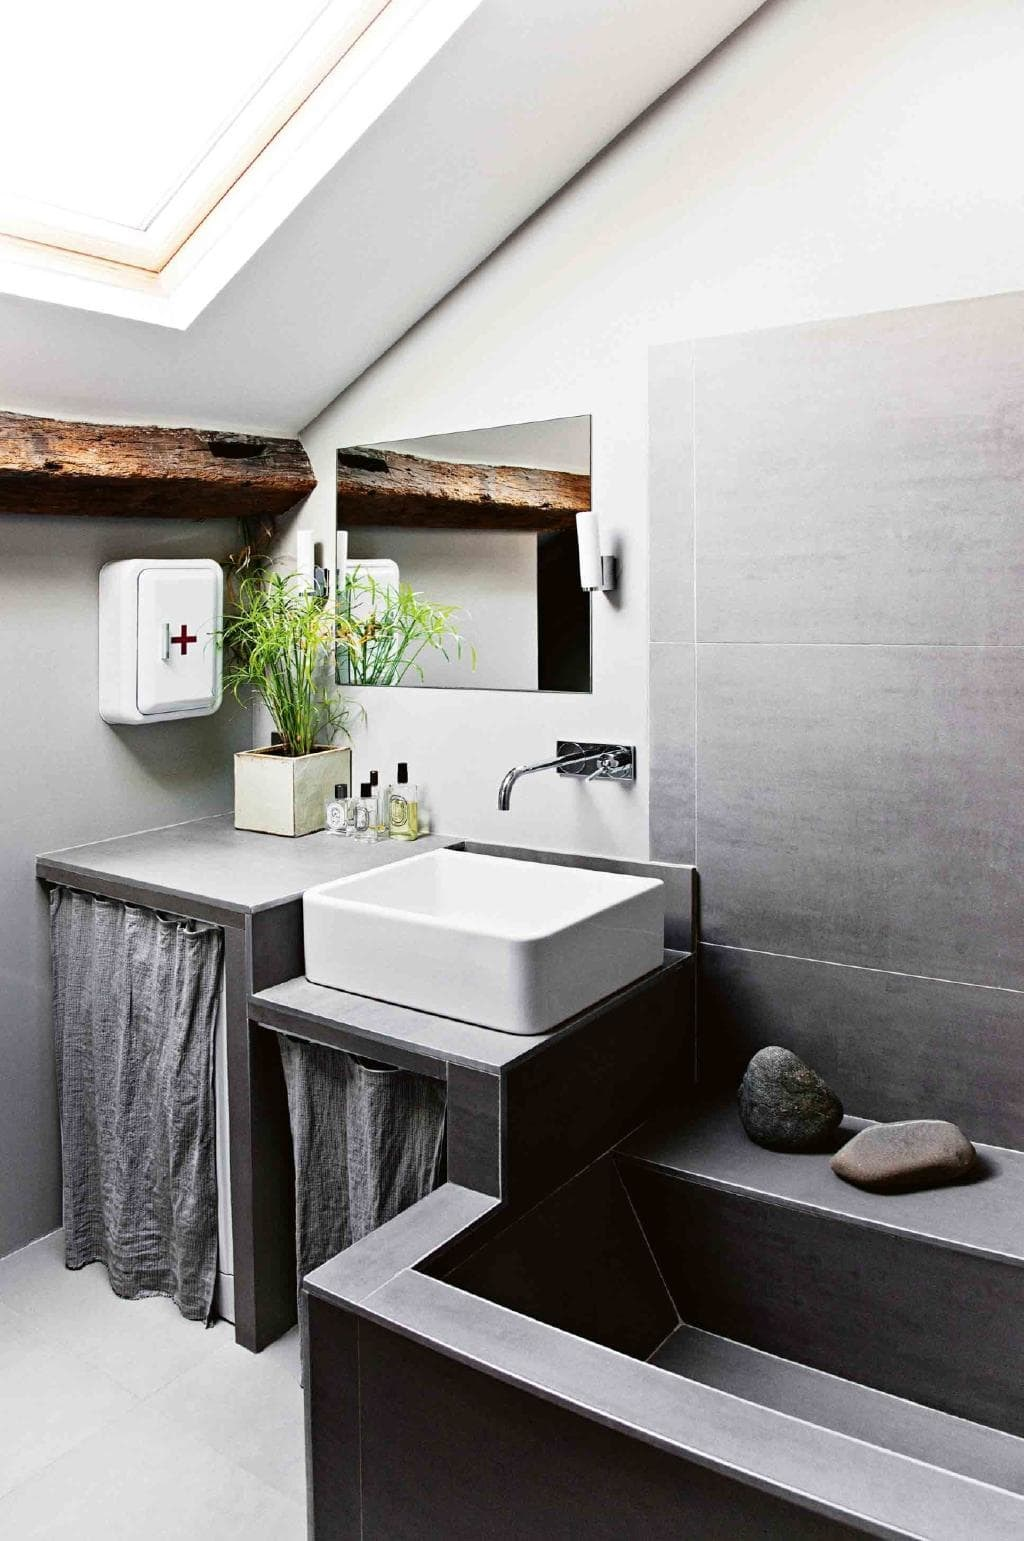 """A modular stone bench morphs into a bath tub which makes the most of the limited space. When renovating their [small Parisian apartment](https://www.homestolove.com.au/small-space-ideas-from-a-parisian-apartment-17037